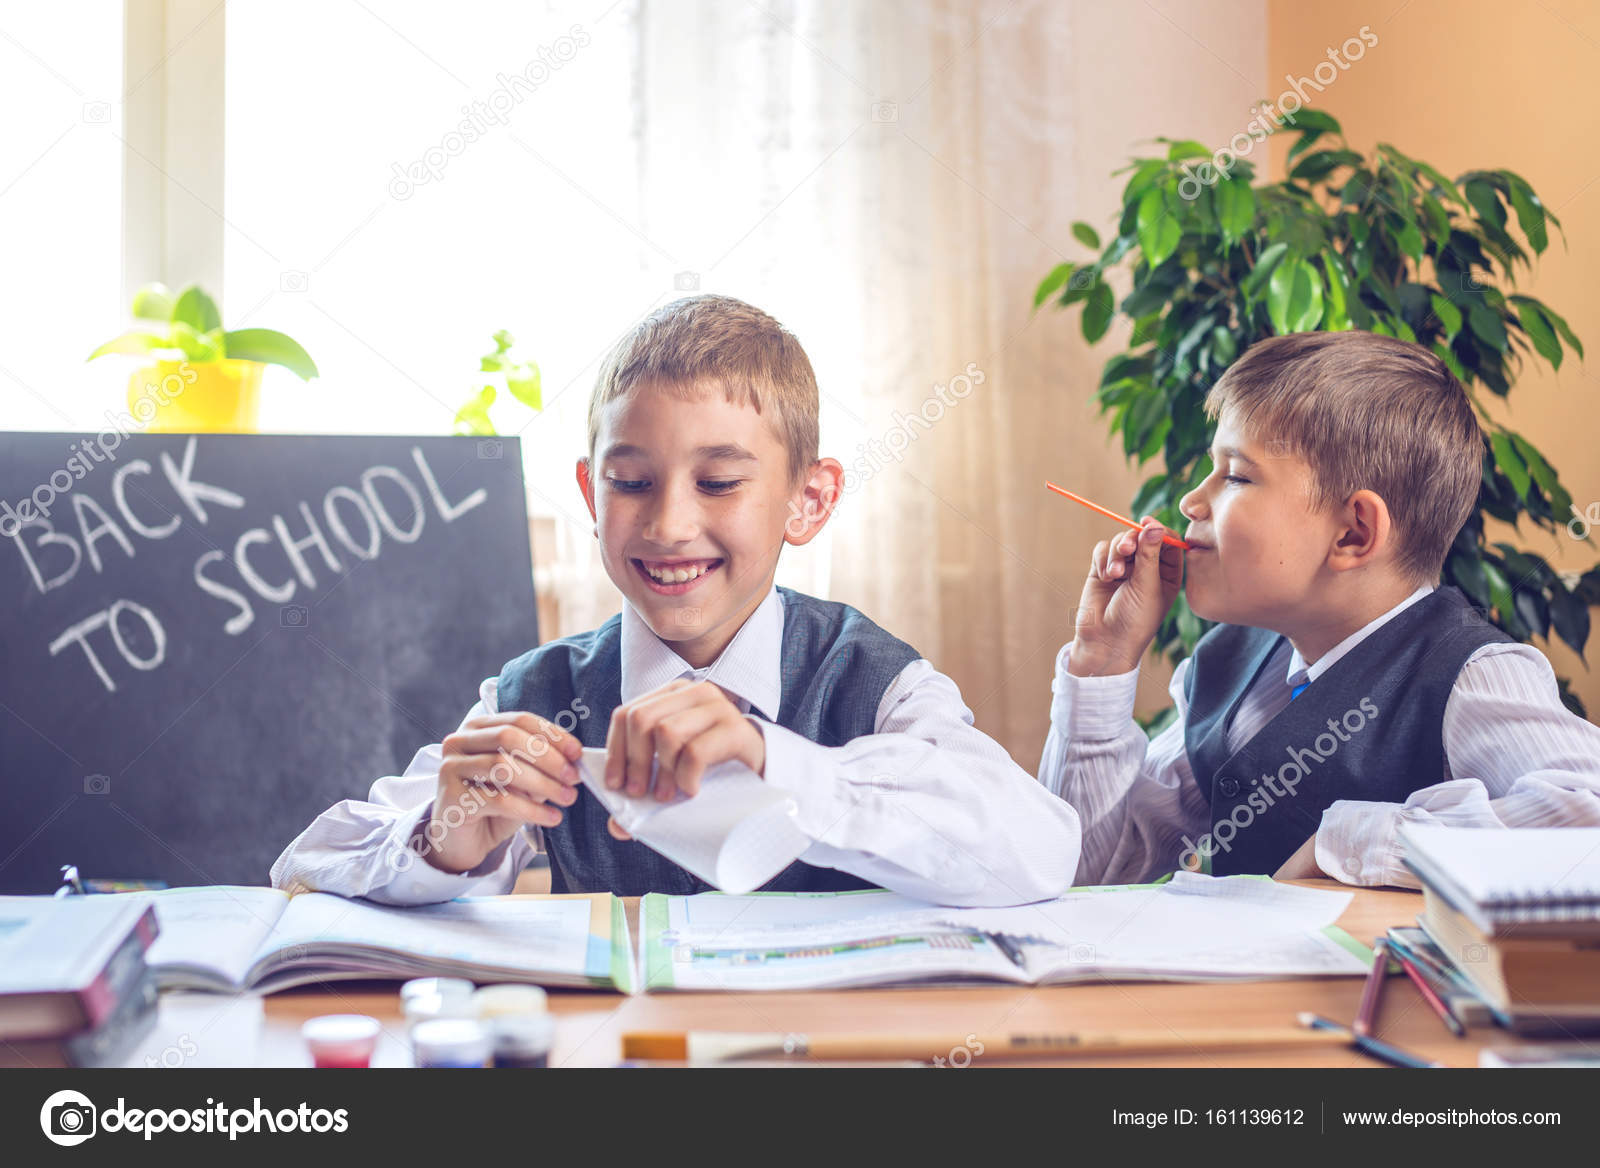 Getting naughty class schoolboys after